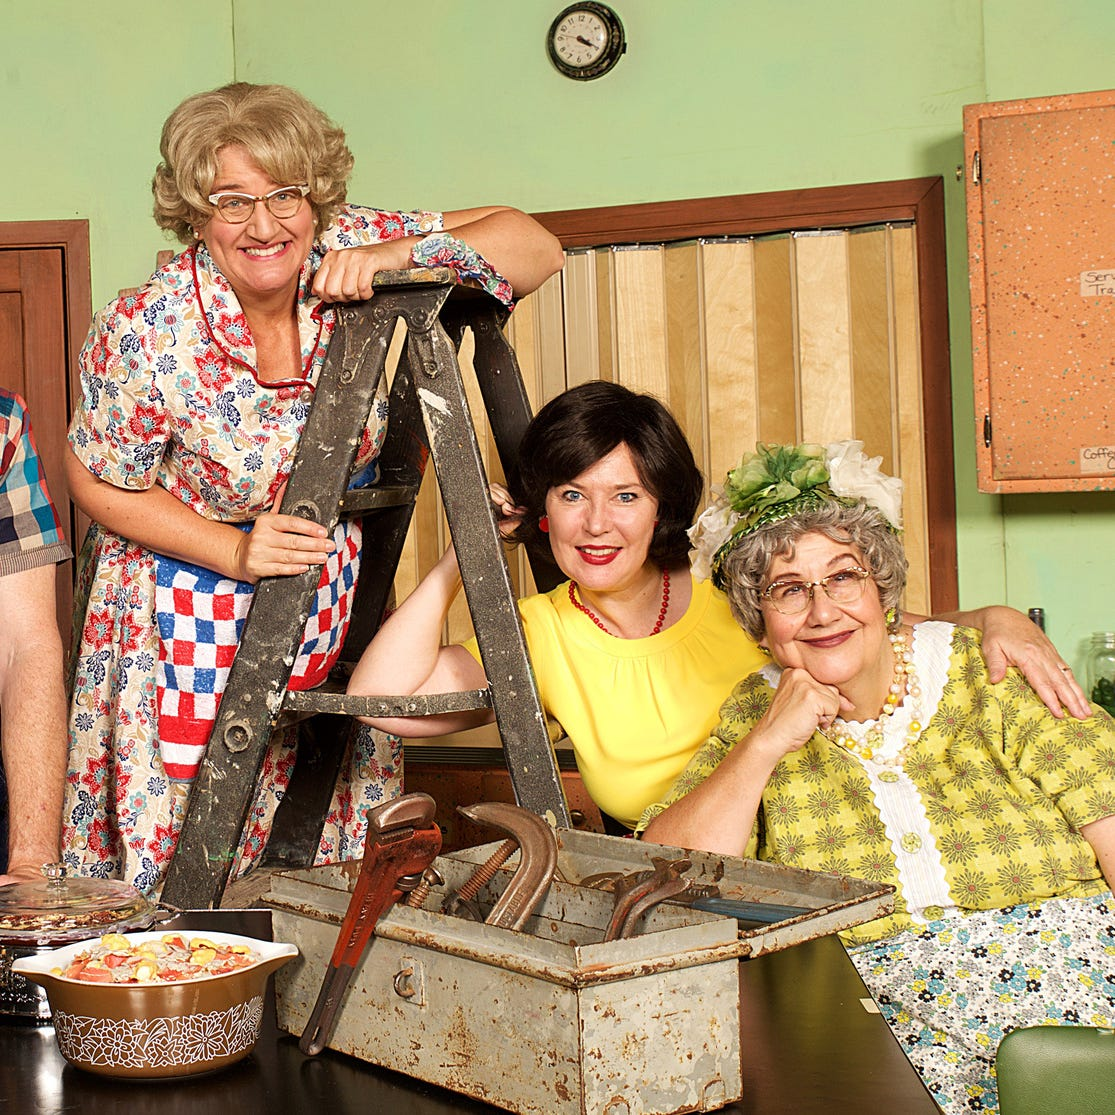 Entertainment: Palace to present Church Basement Ladies musical comedy